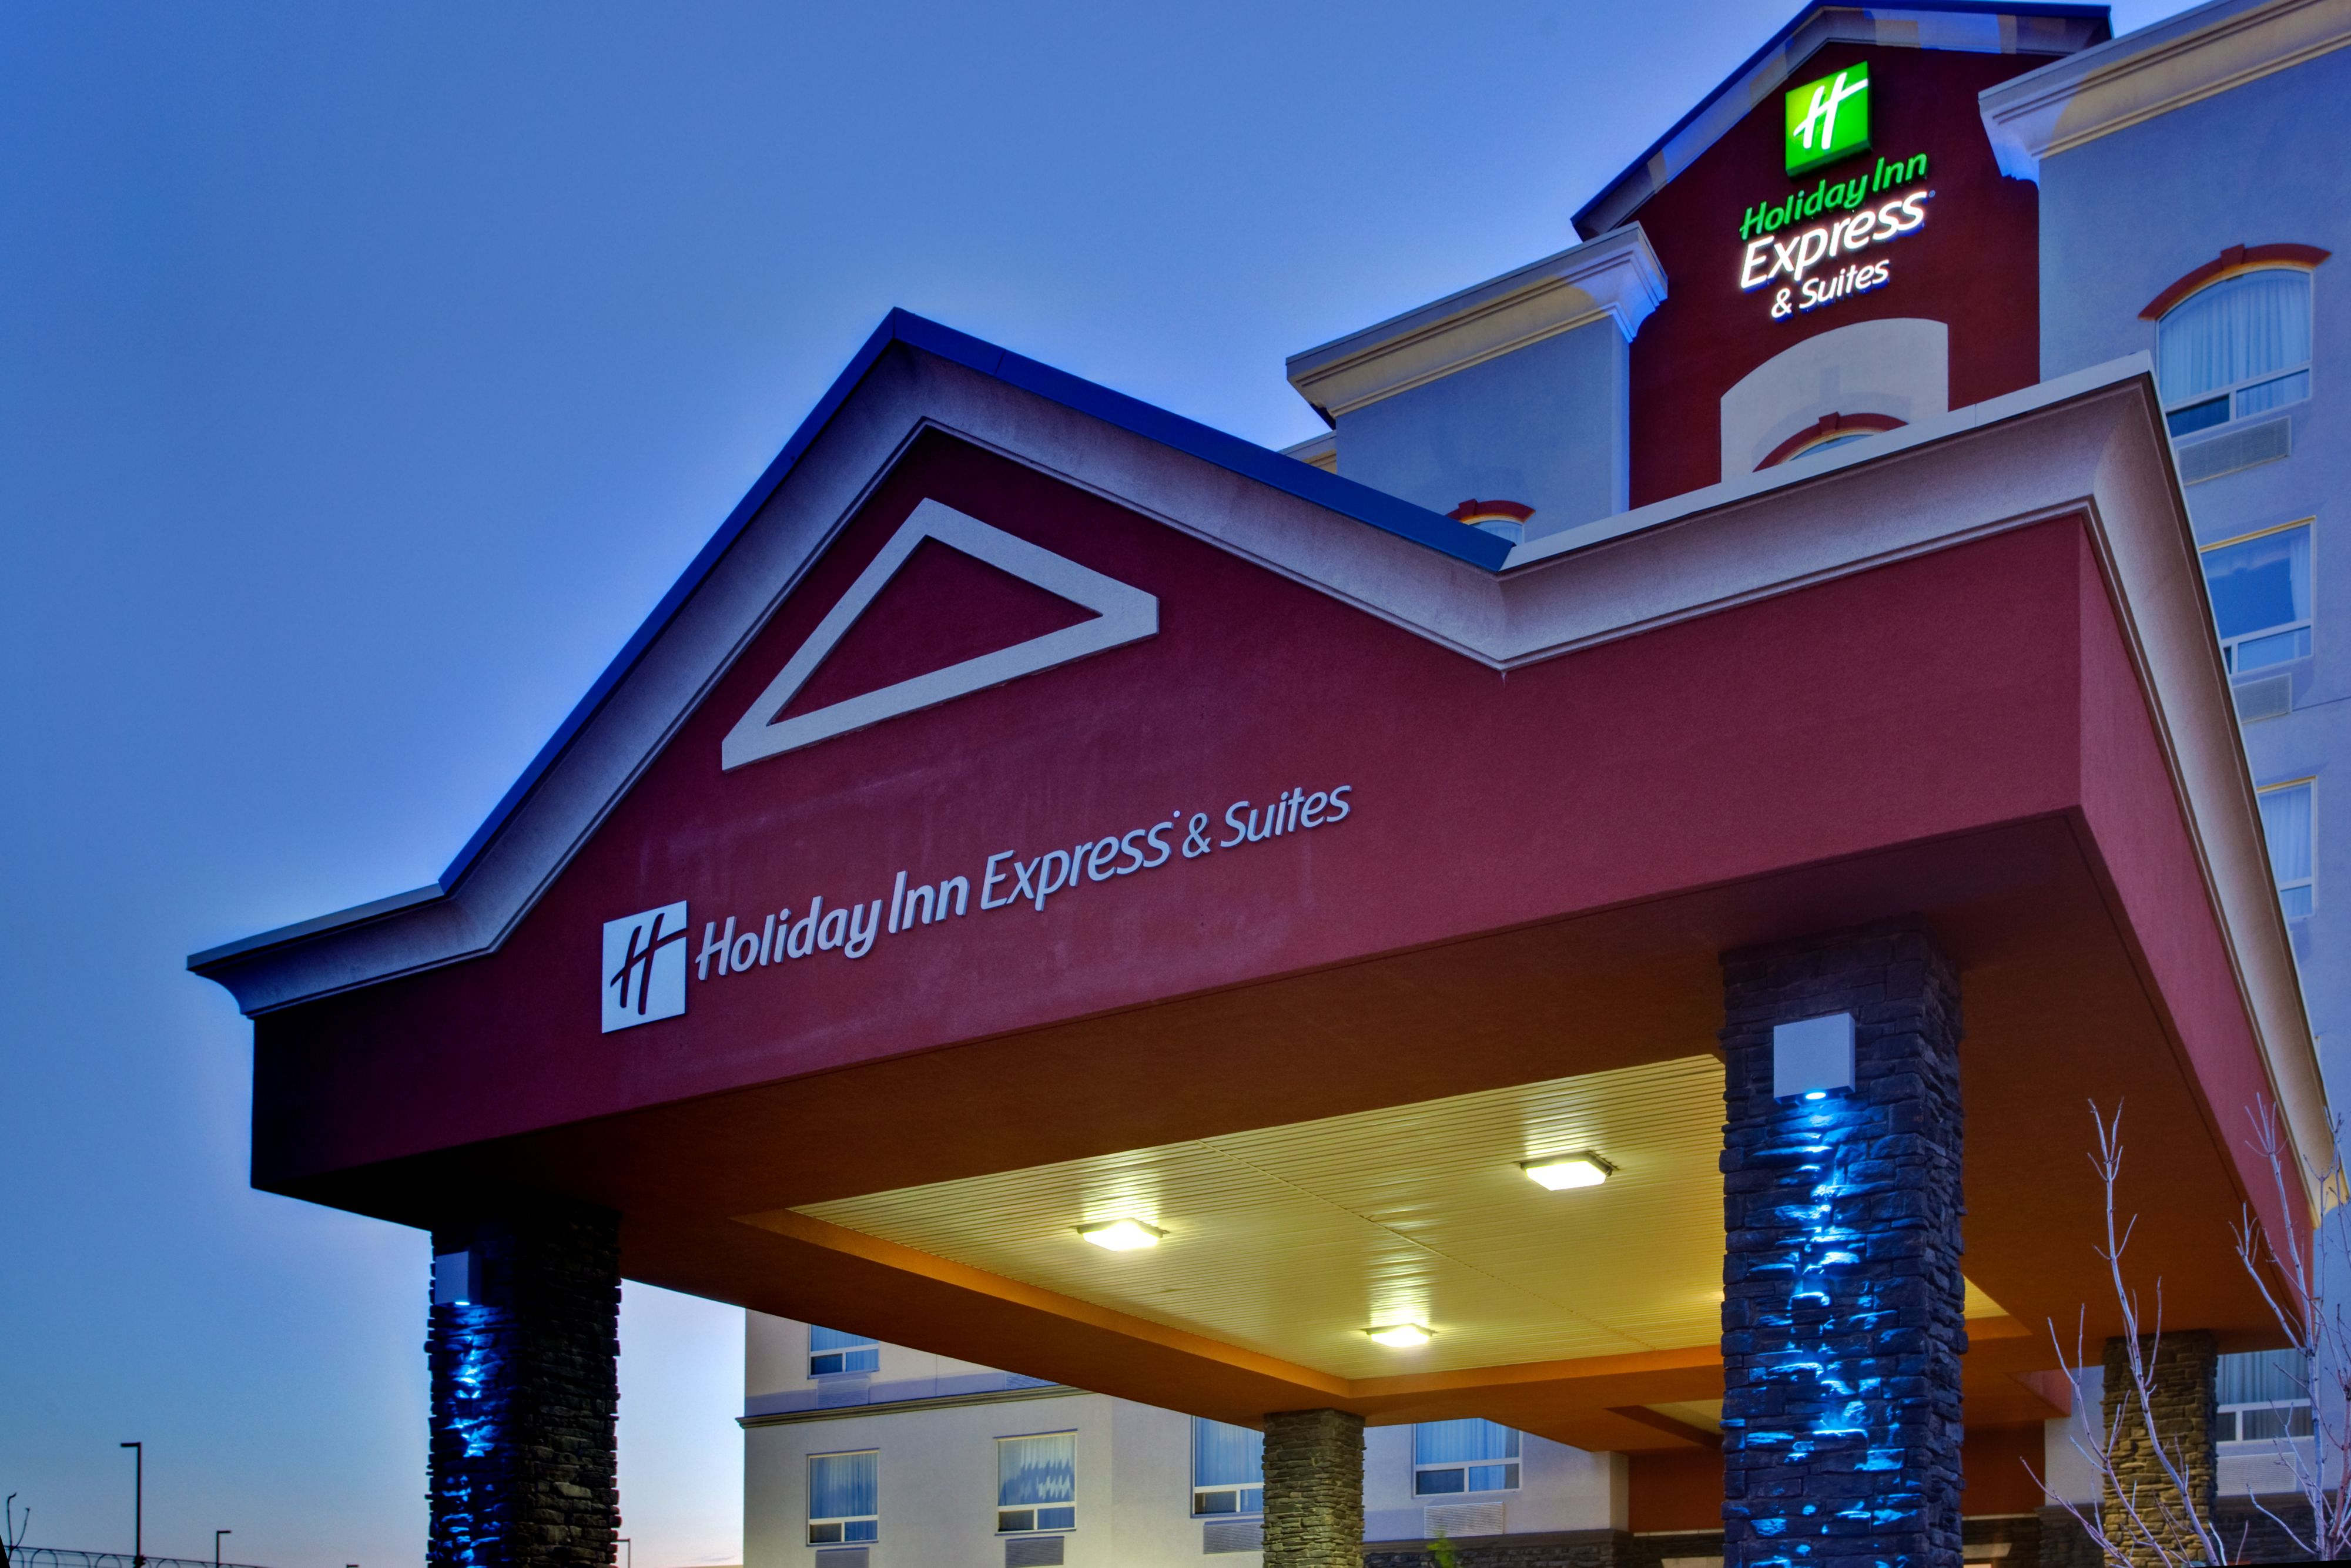 Holiday Inn Express Amp Suites Edmond In Edmond Ok Whitepages